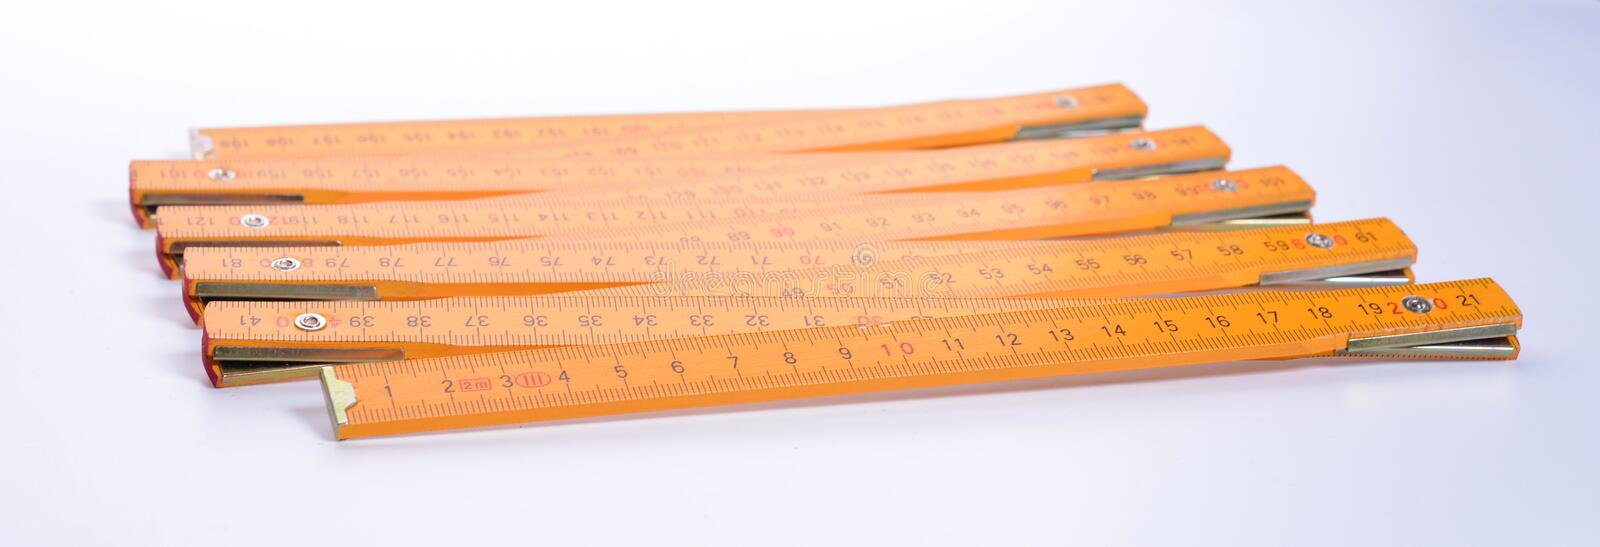 Yellow carpenter`s ruler royalty free stock image